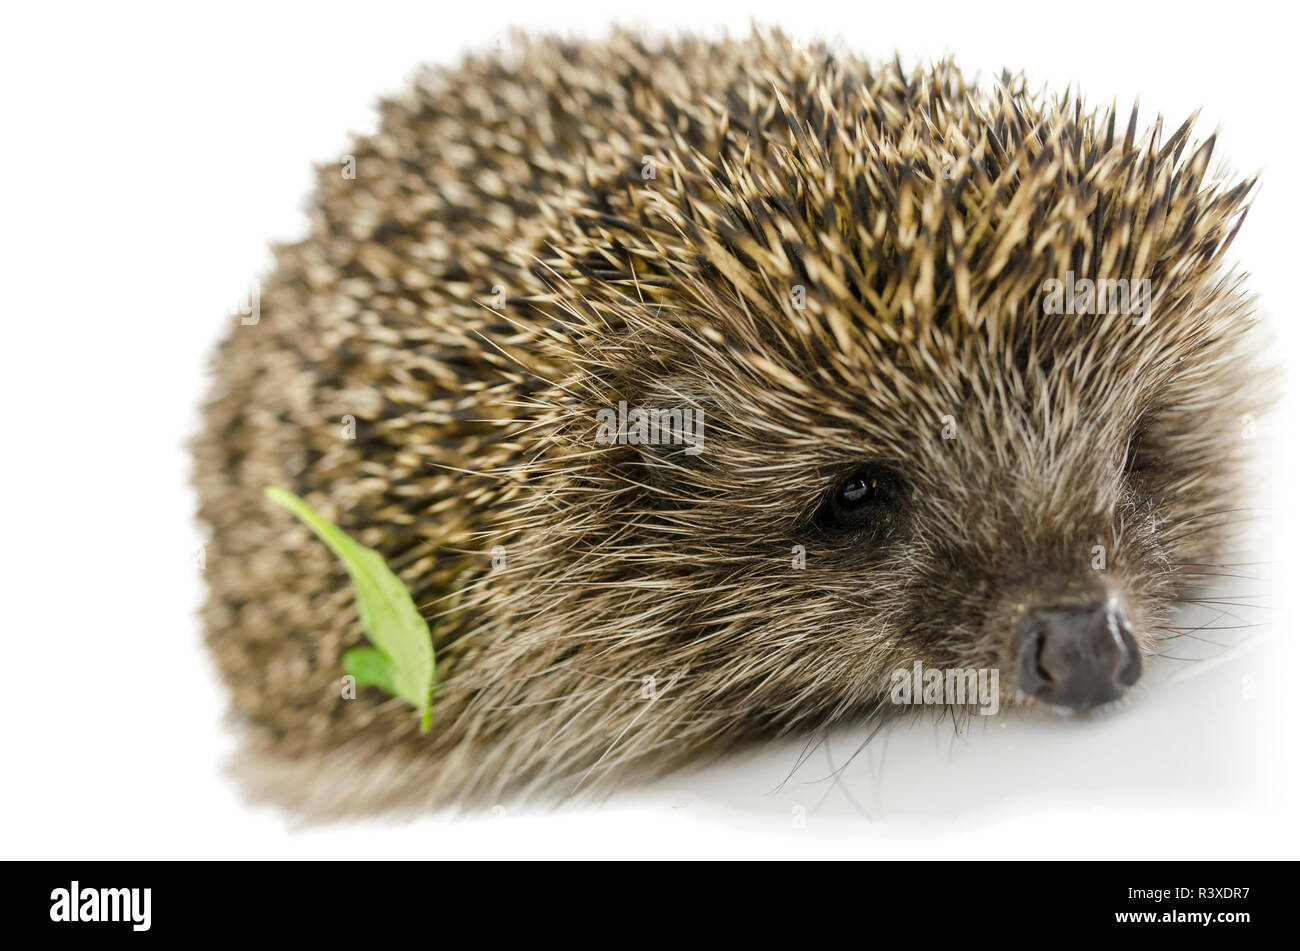 Hedgehog with green leaf on its quills. Isolated over white. - Stock Image